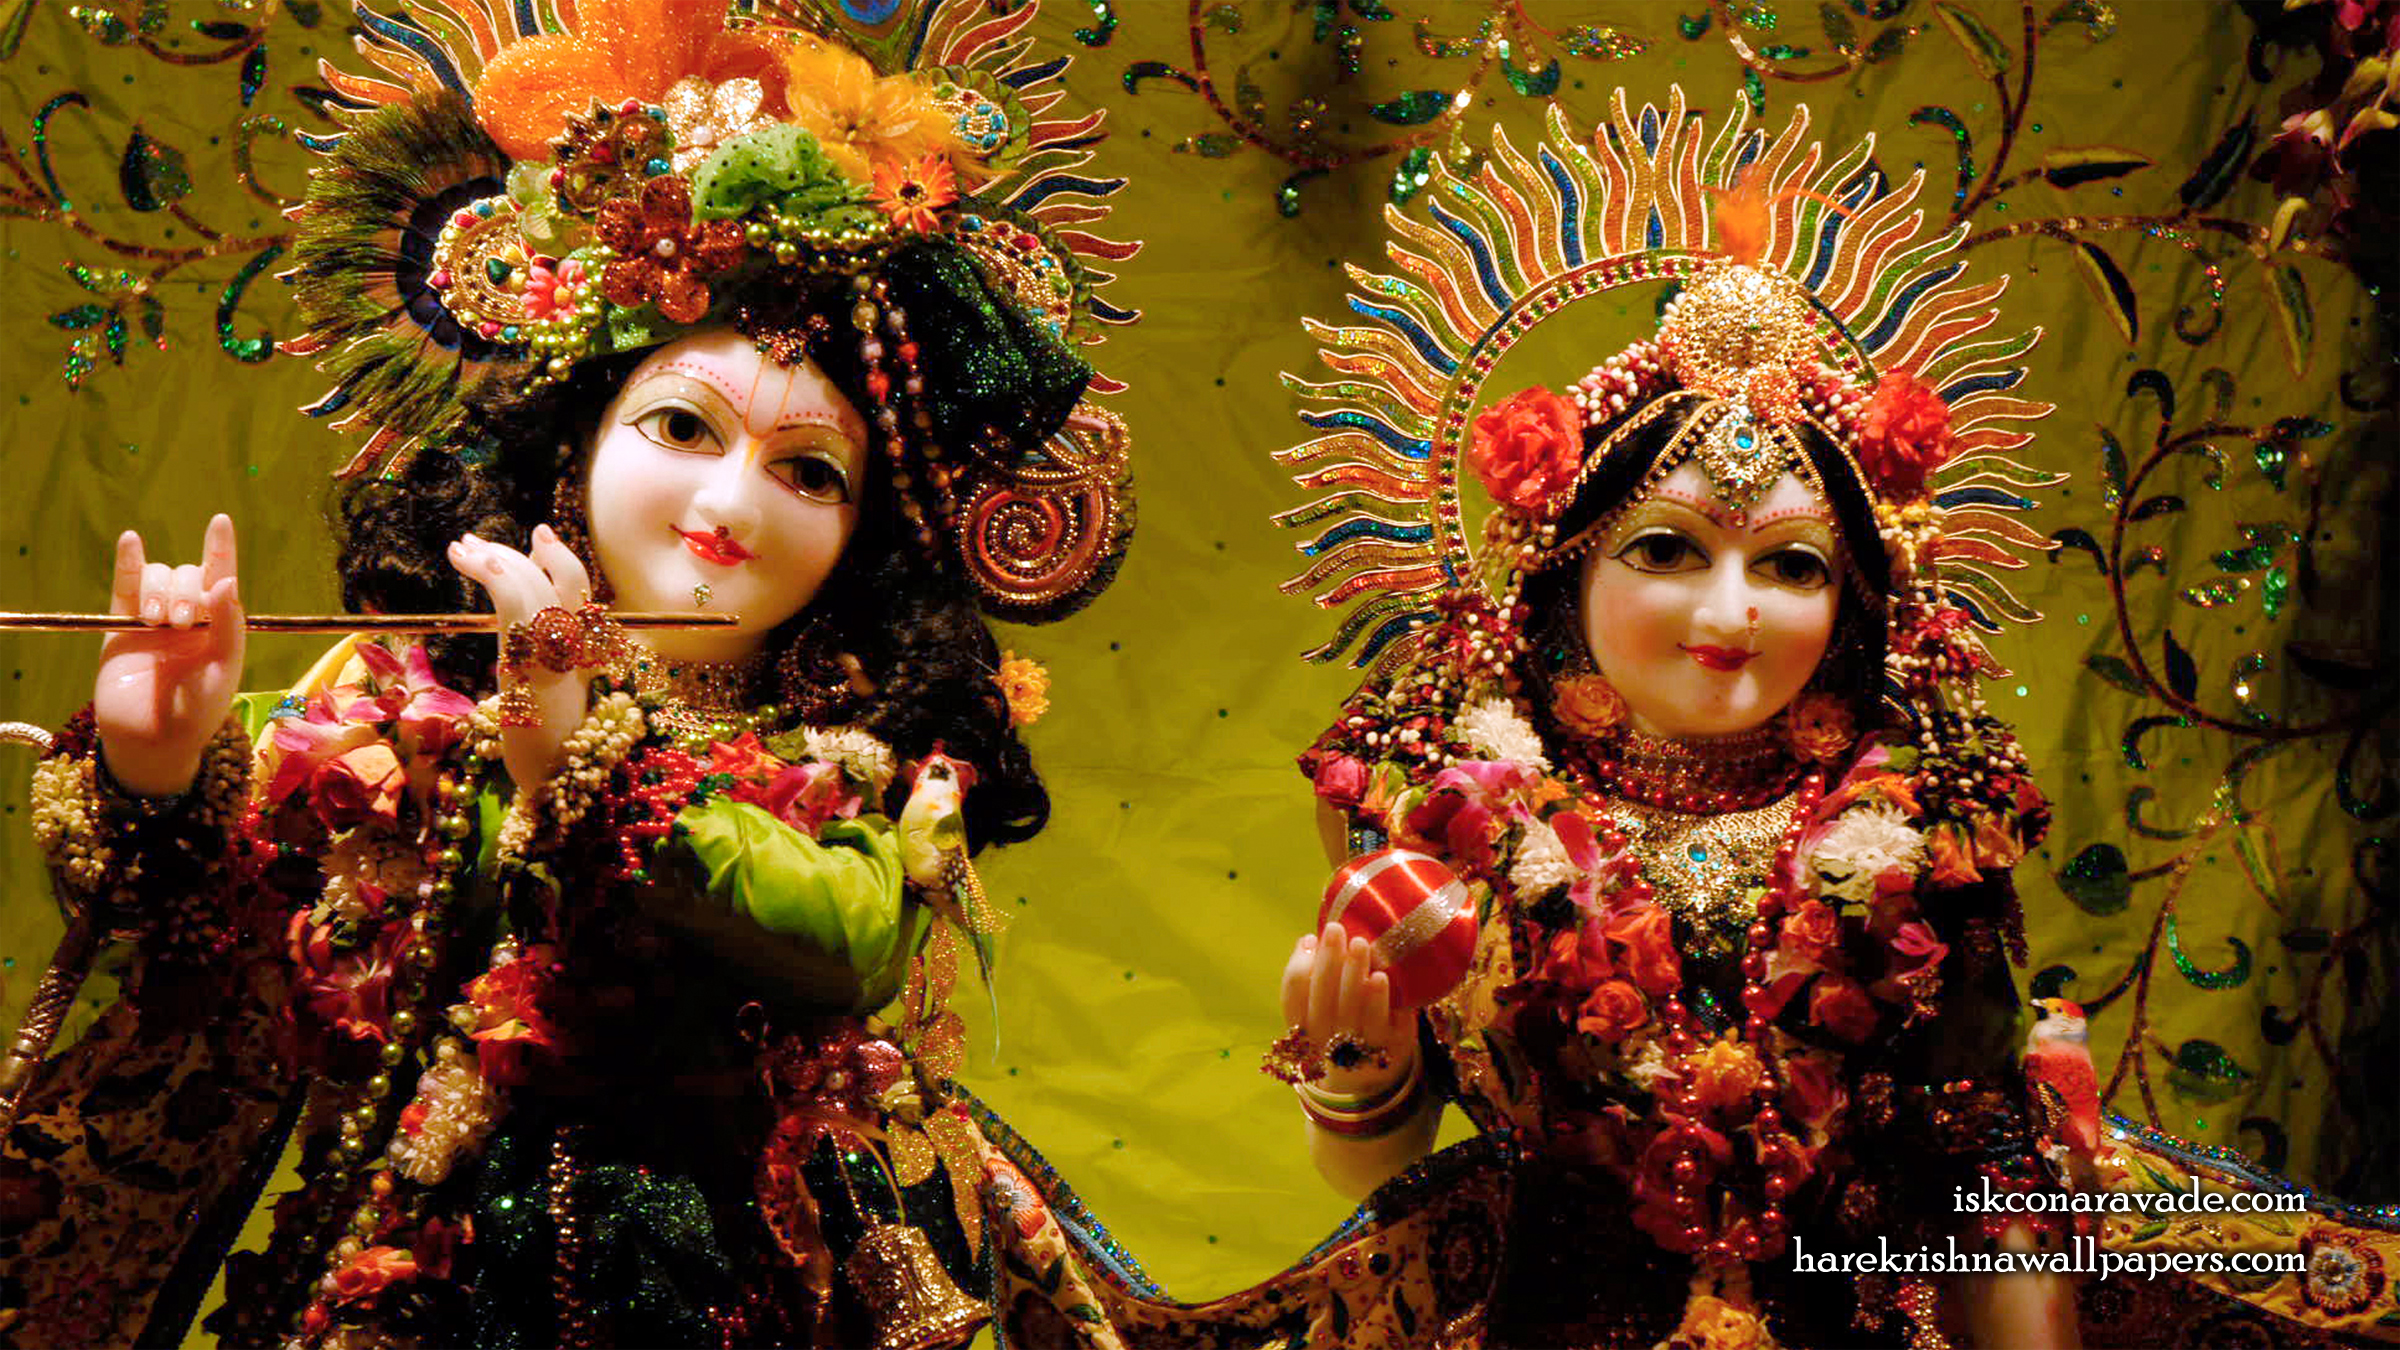 Sri Sri Radha Gopal Close up Wallpaper (001) Size 2400x1350 Download